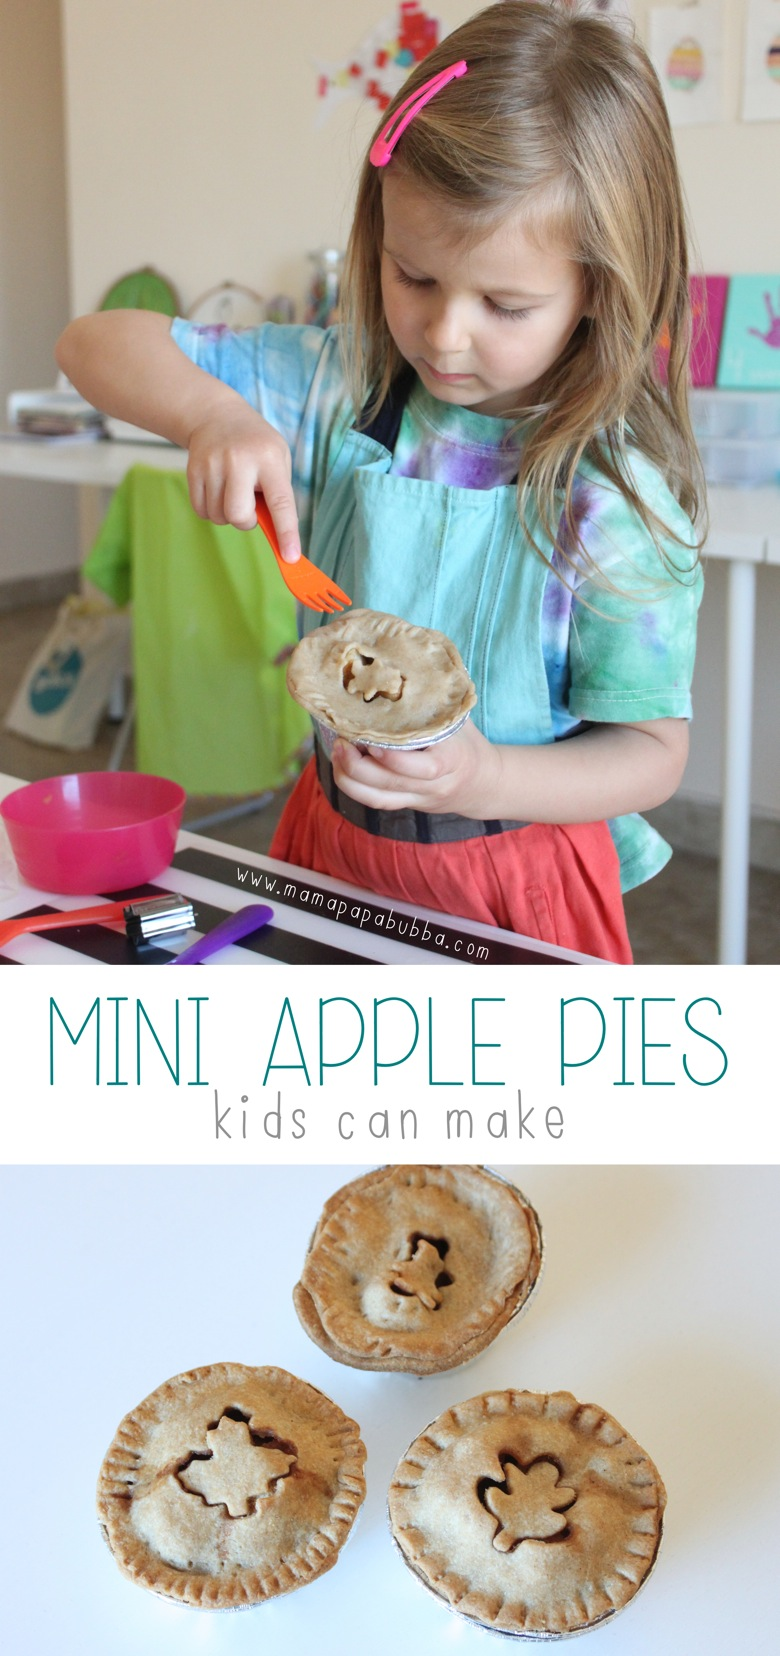 Mini Apple Pies Kids Can Make | Mama Papa Bubba